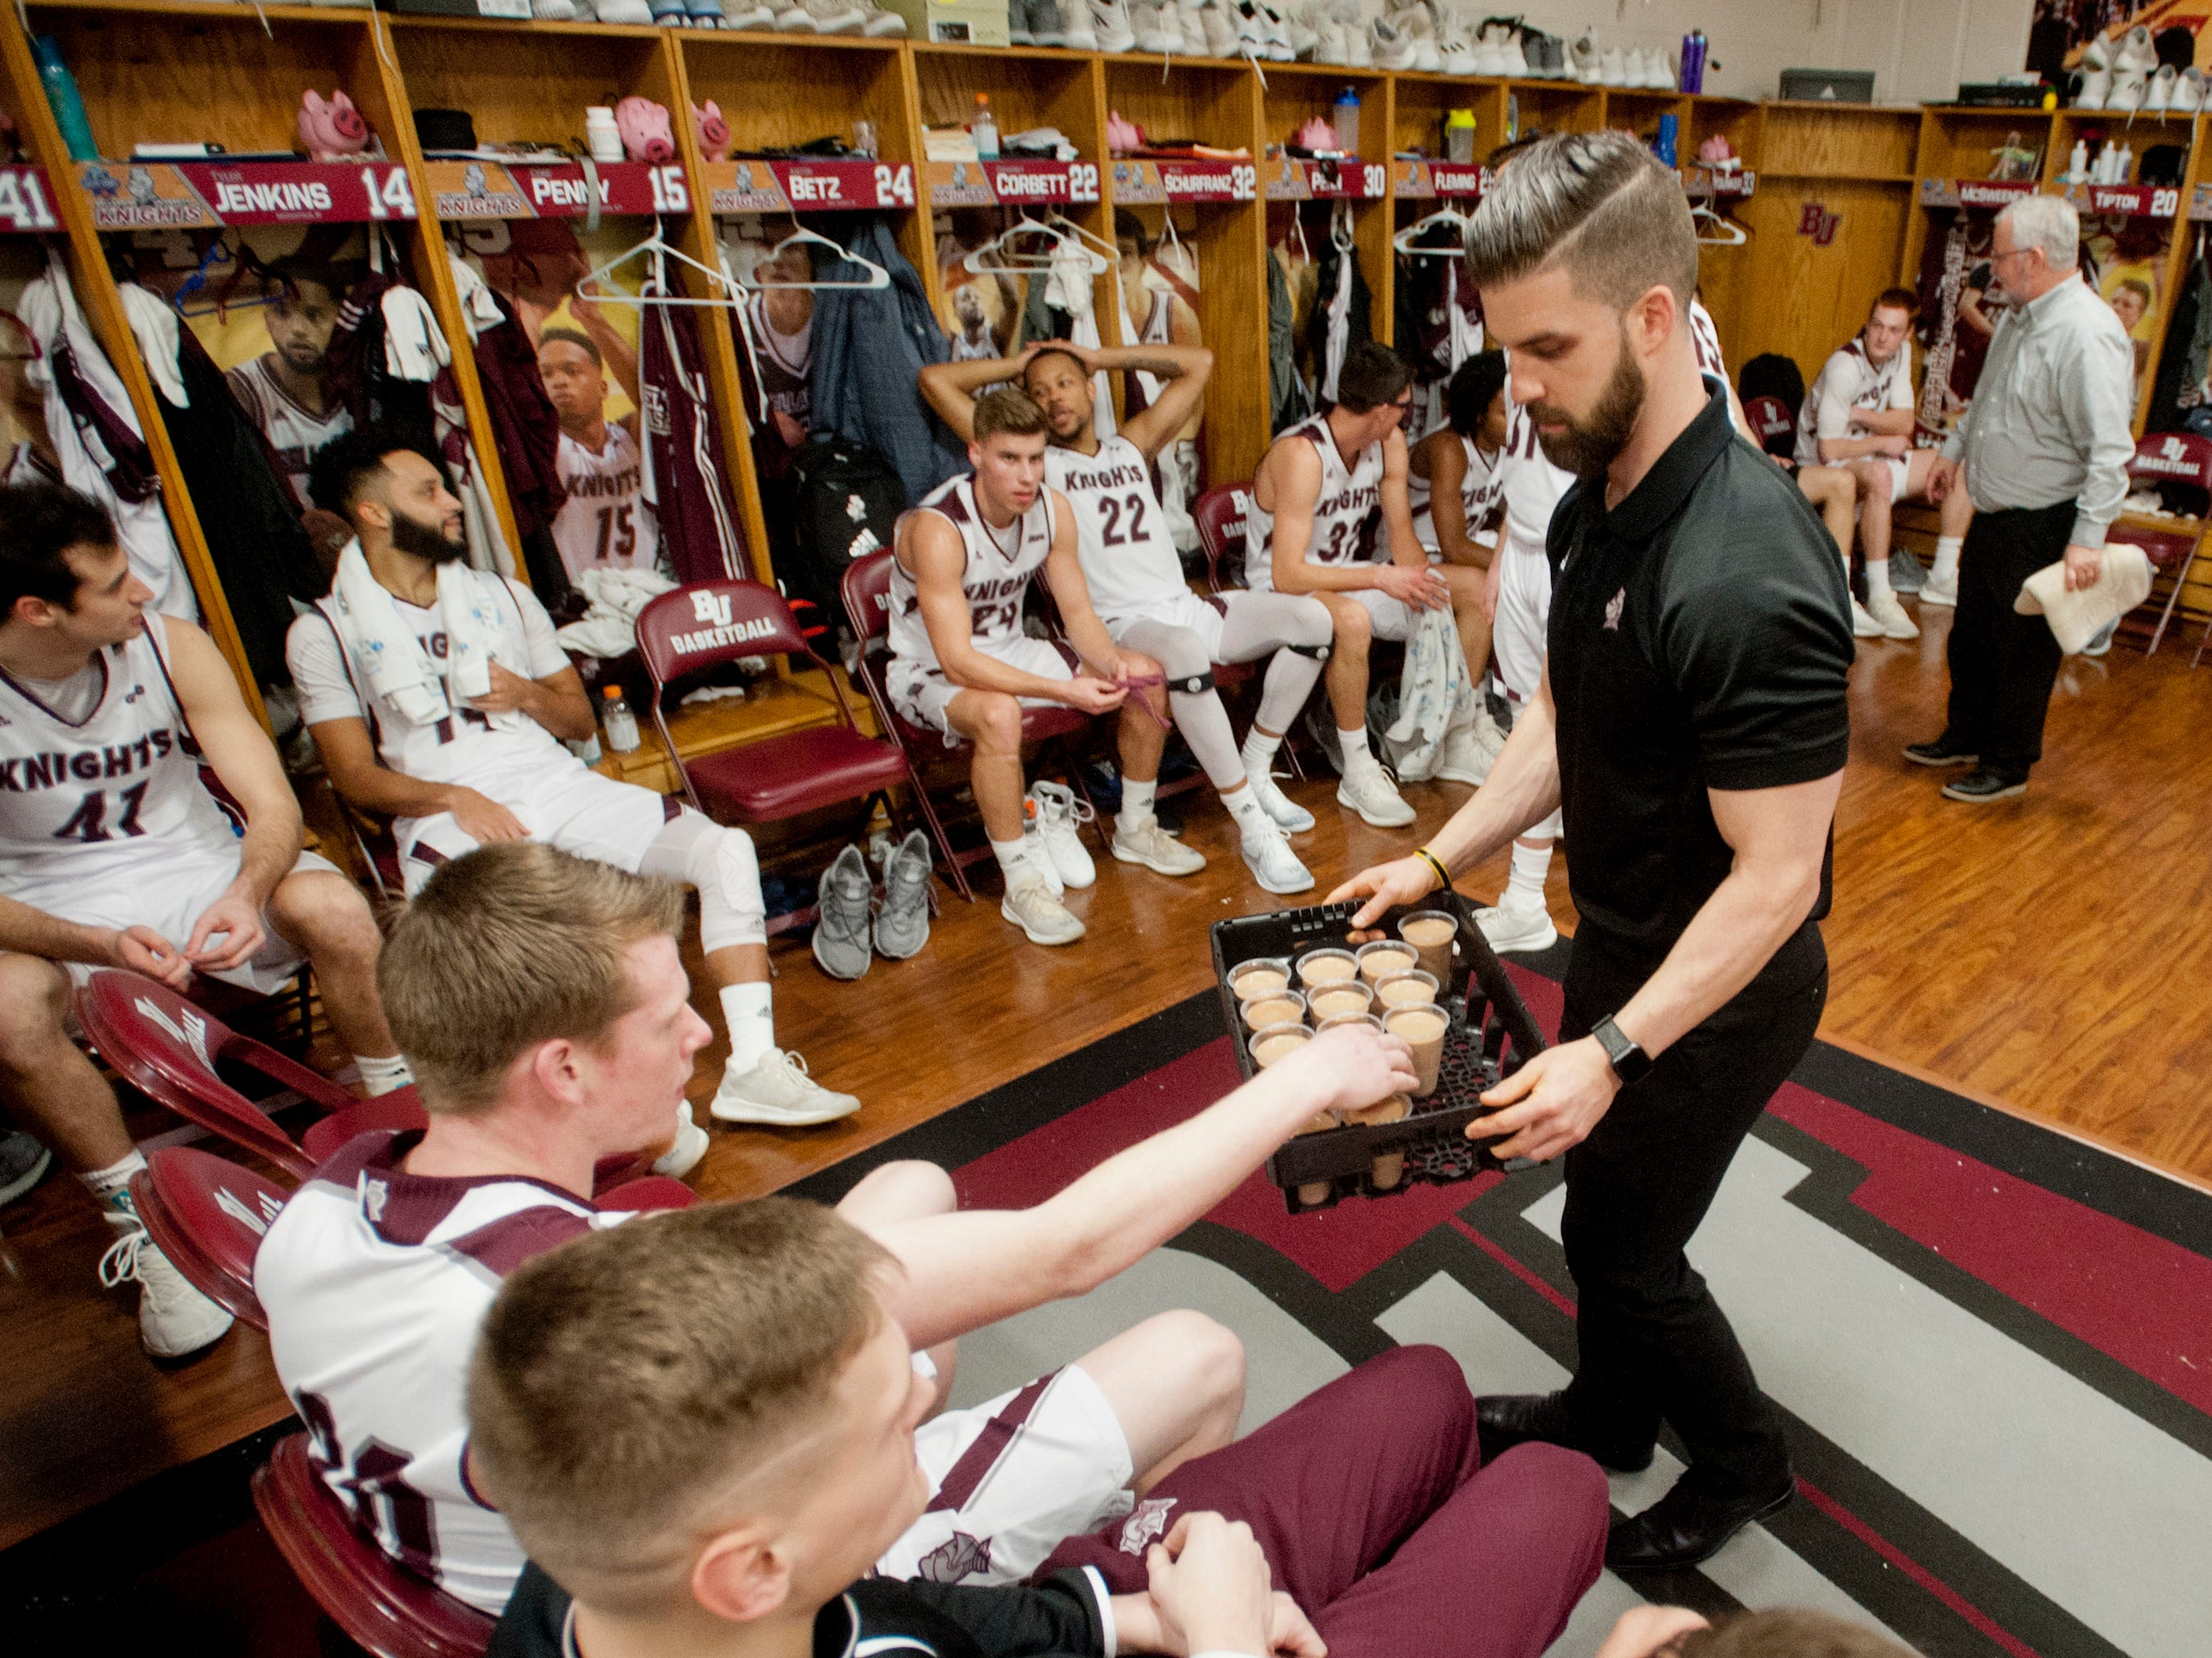 After the game, team strength coach Steve Hartman hands out protein shakes to the players.18 December 2018